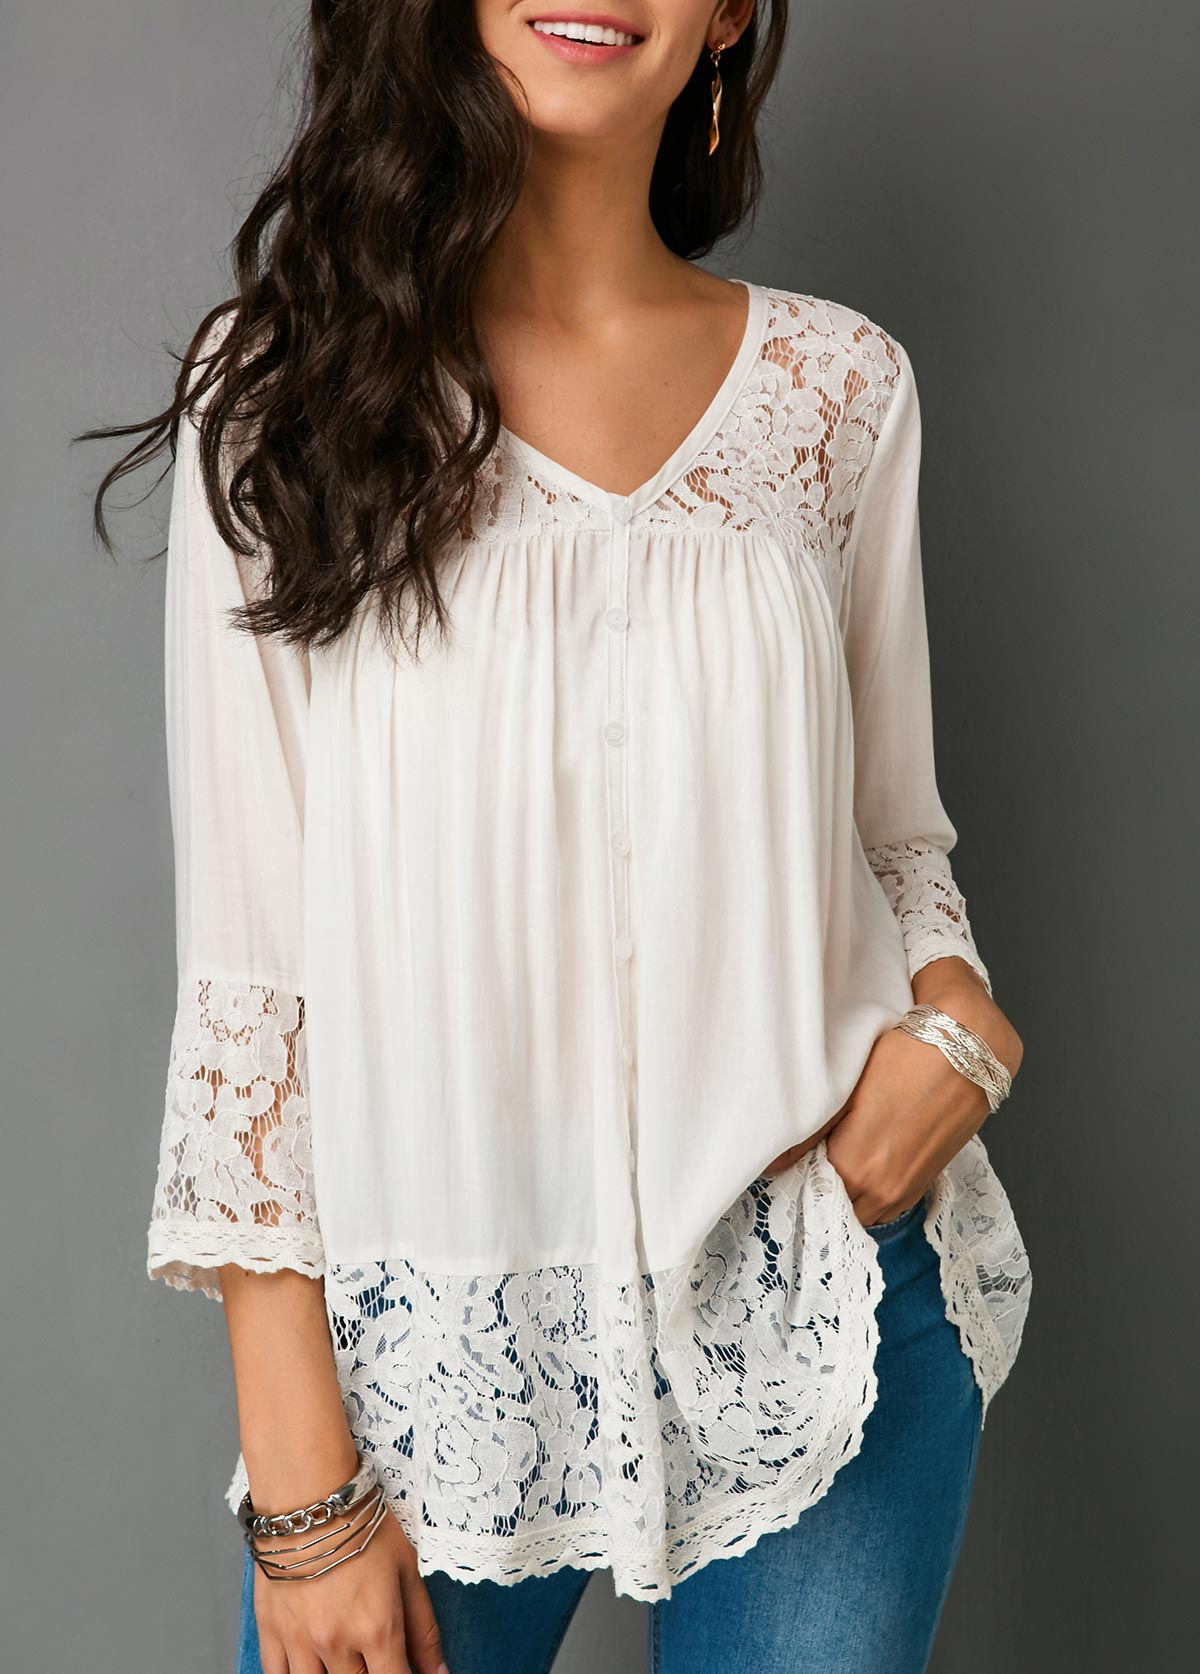 Lace Patchwork Button Up White Blouse